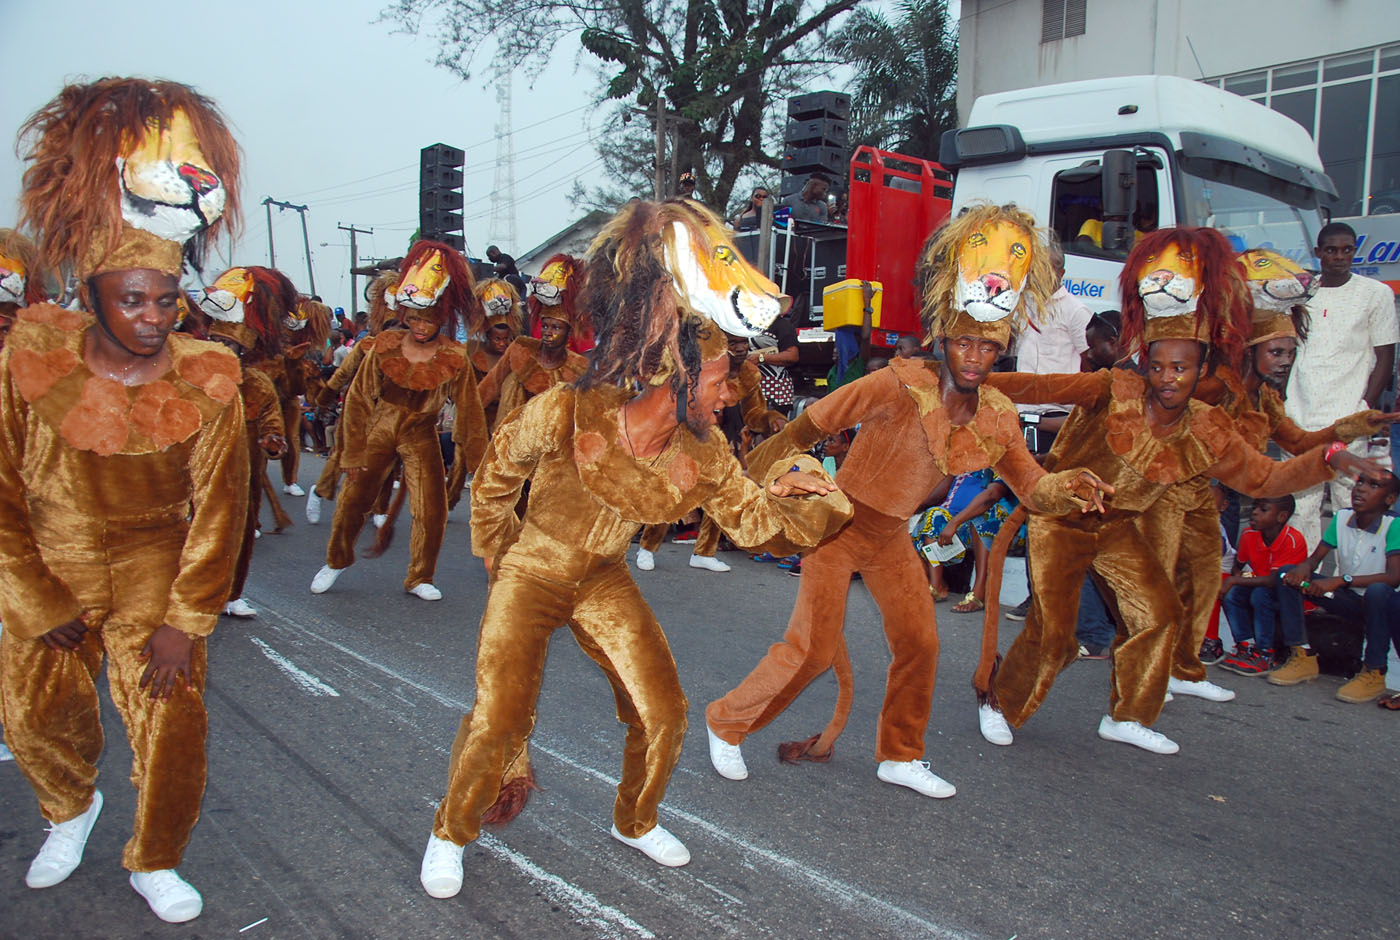 Members of Masta Blasta Band with Lion Costume during the Main Event of the 2017 Carnival Calabar in Cross River State Yesterday. Photo: Nwankpa Chijioke